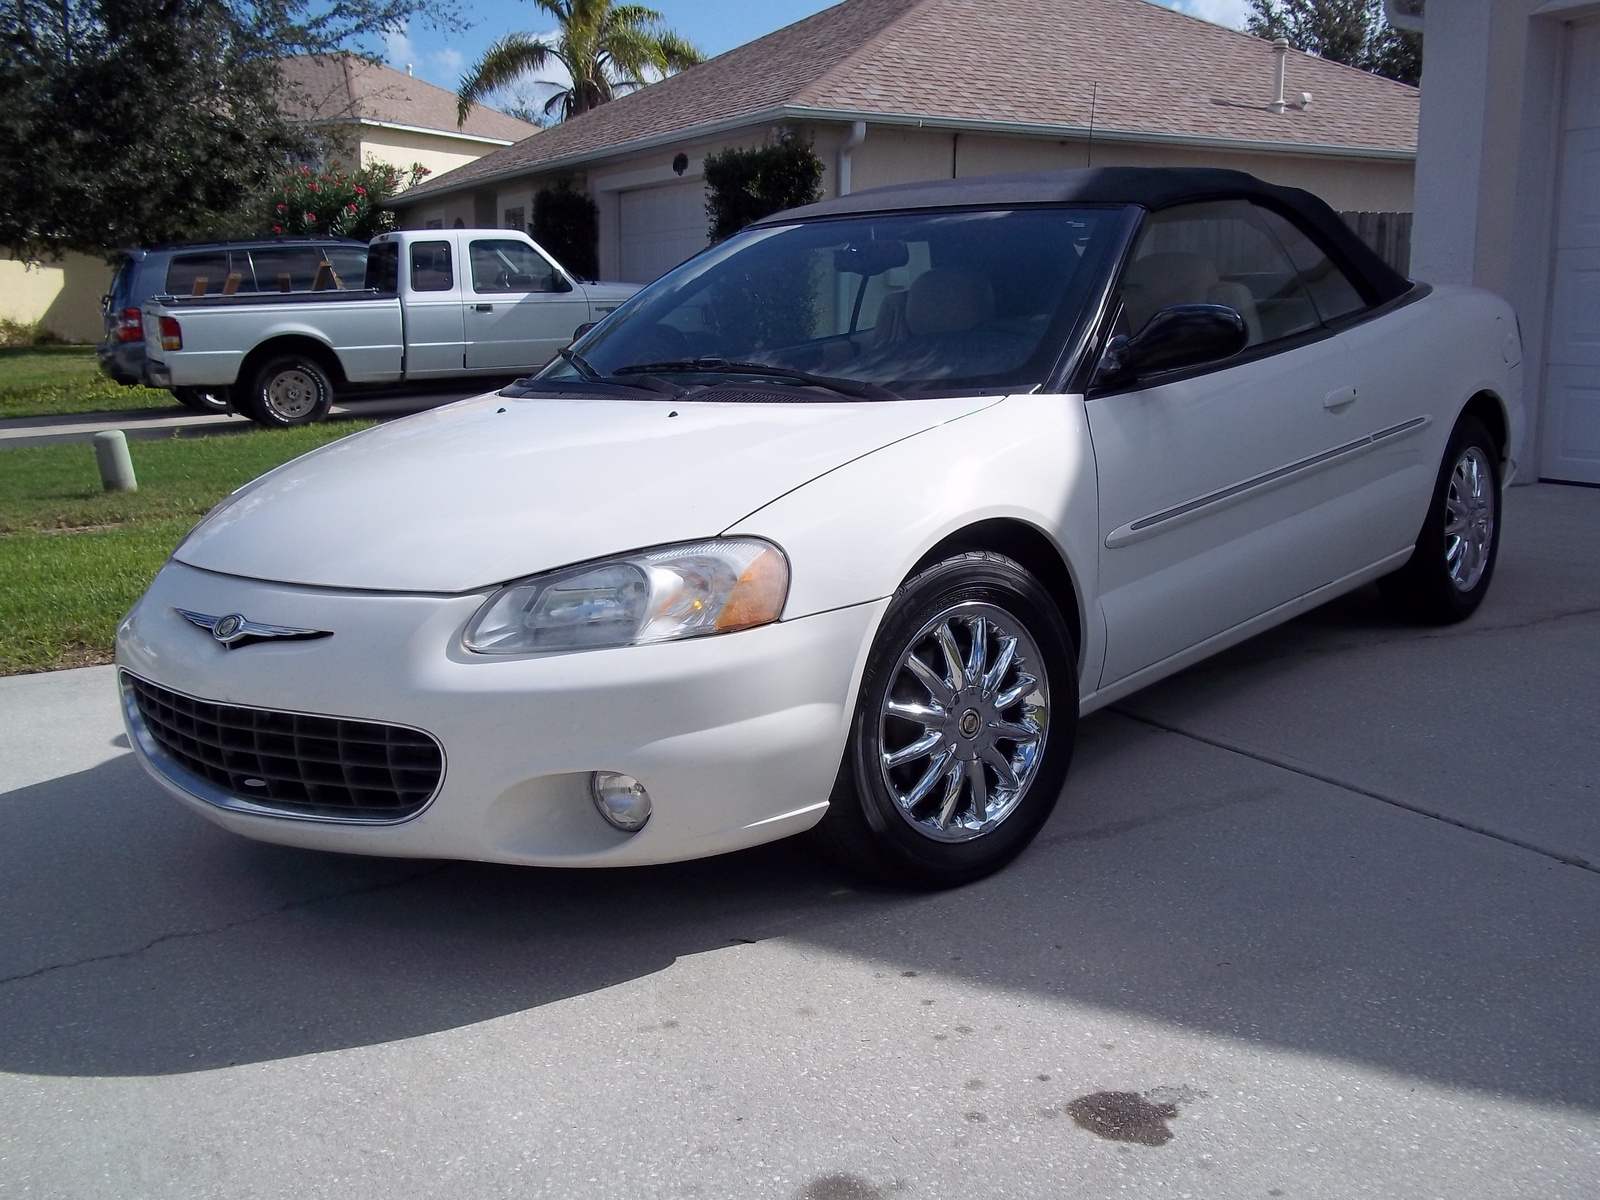 2000 Moreover 2002 Chrysler Sebring Limited Convertible Pictures T3991